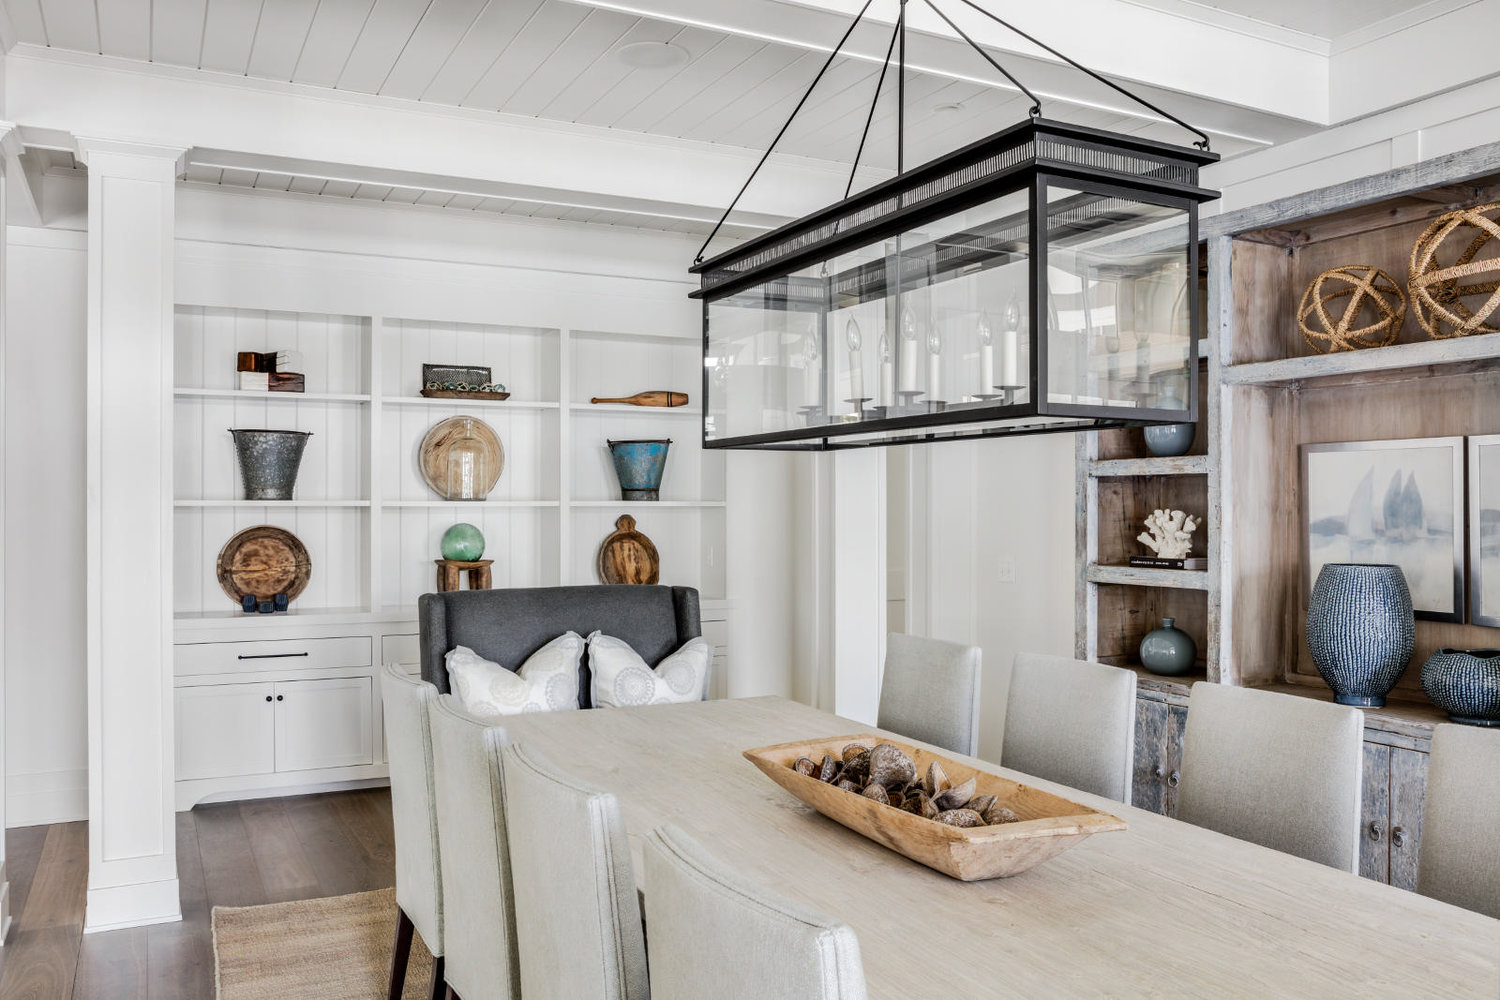 Dining room furniture with clean modern lines in a shade of driftwood.